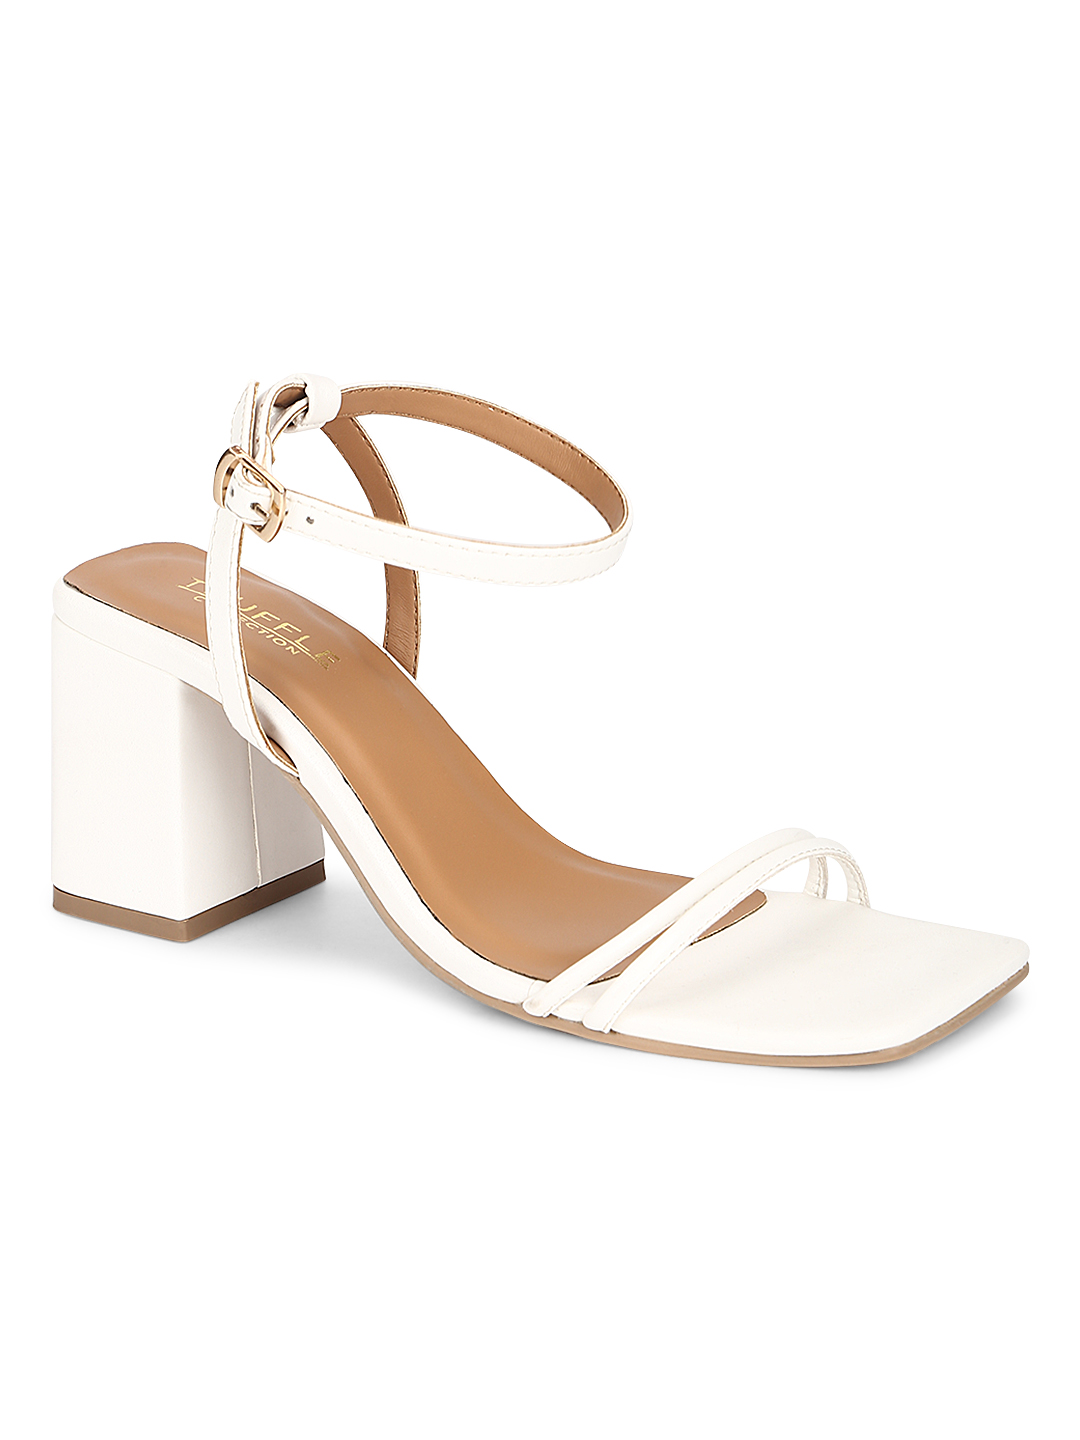 Truffle Collection   Truffle Collection White PU Double Strap Block Heels